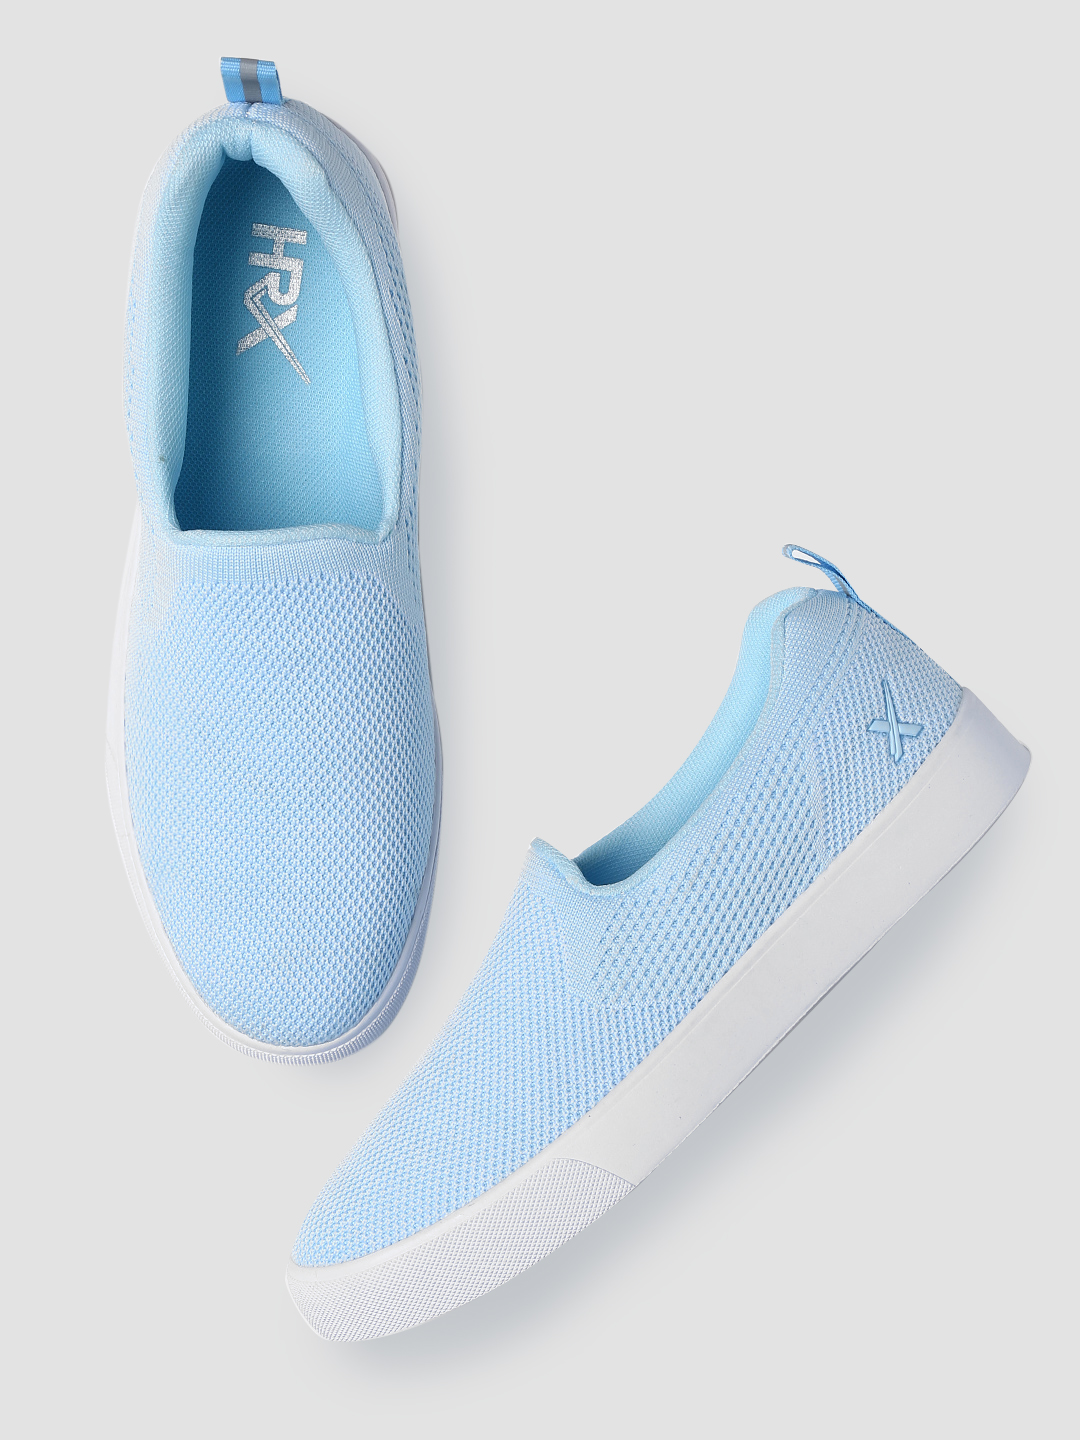 HRX by Hrithik Roshan Women Blue Slip-On Sneakers Price in India